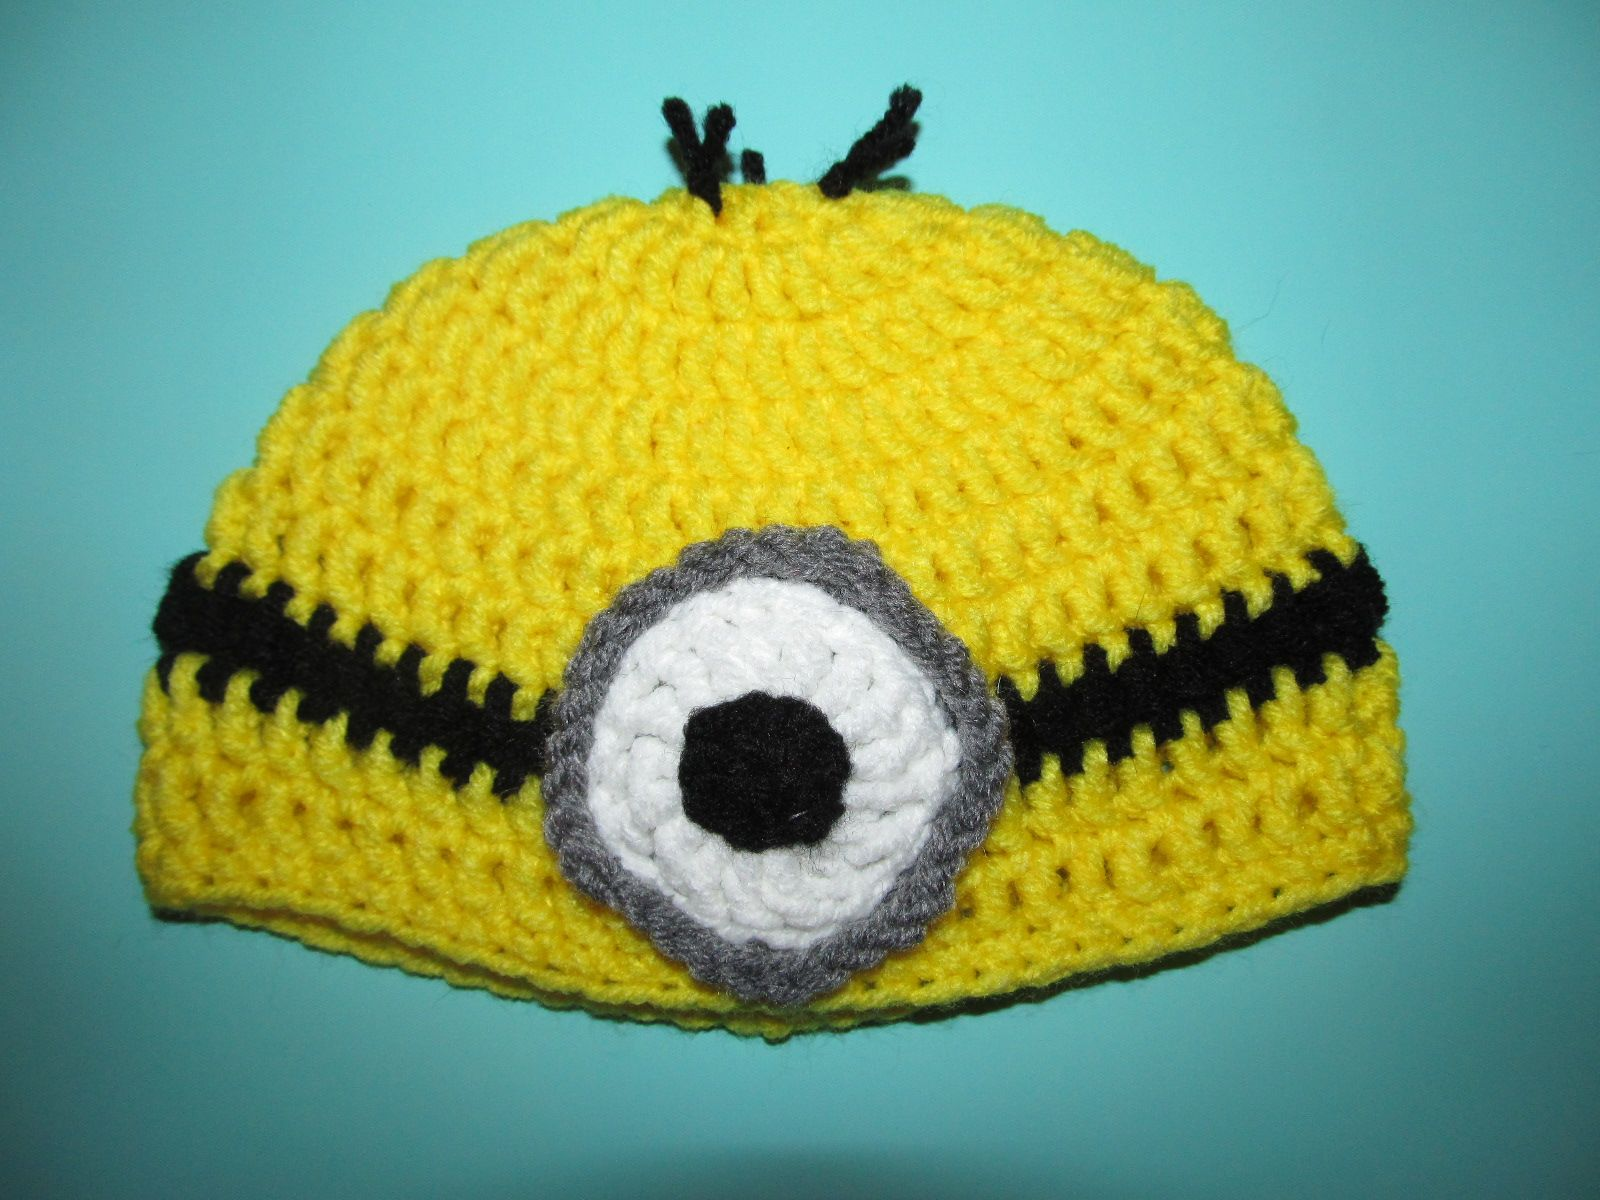 despicable me minion crafts - Google Search | crochet stuff | Pinterest